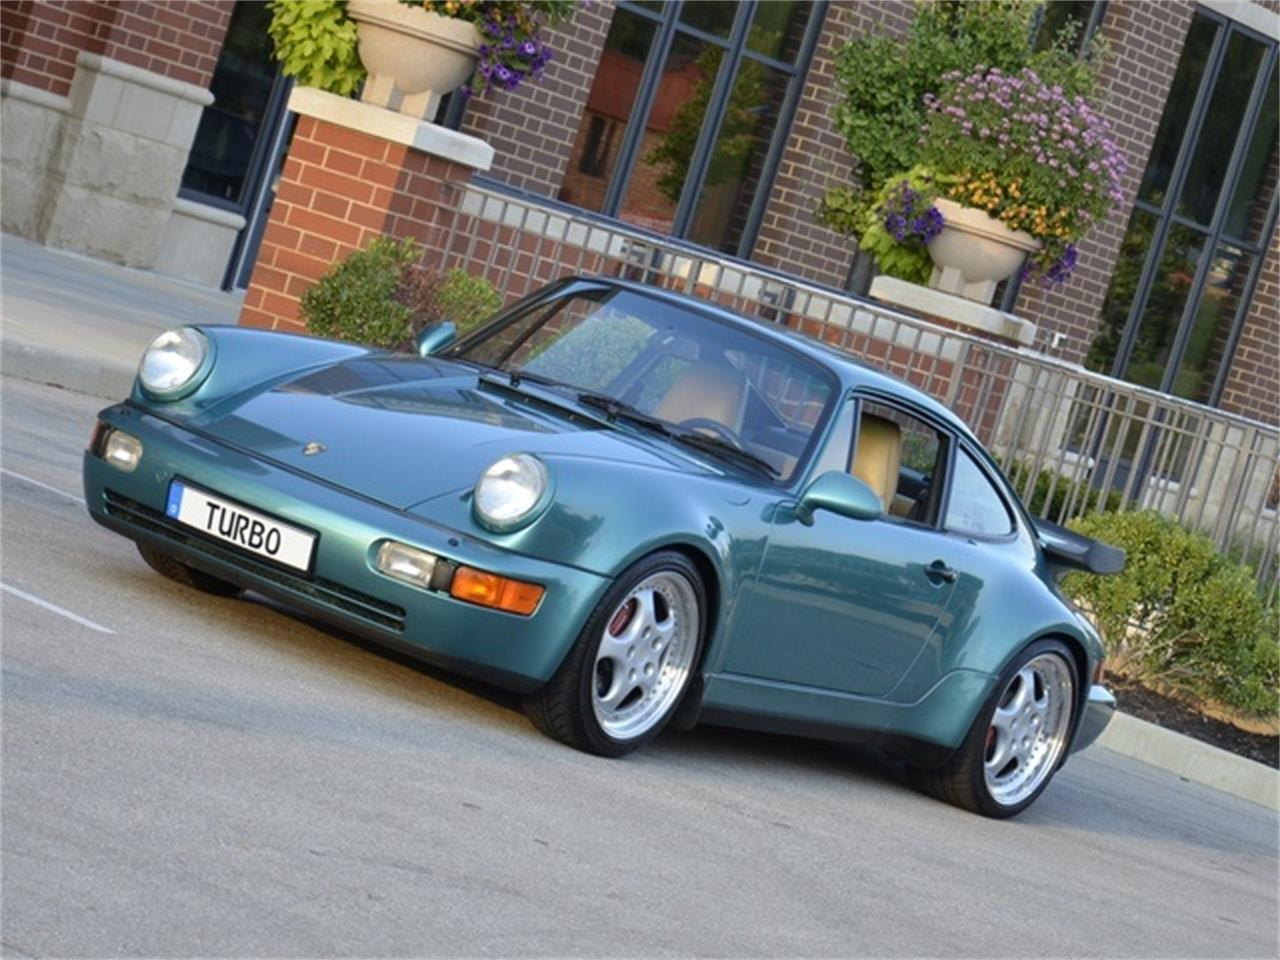 Large Picture of 1994 Porsche 911 Turbo located in Carmel Indiana Auction Vehicle Offered by Abreu Motors - FX1T